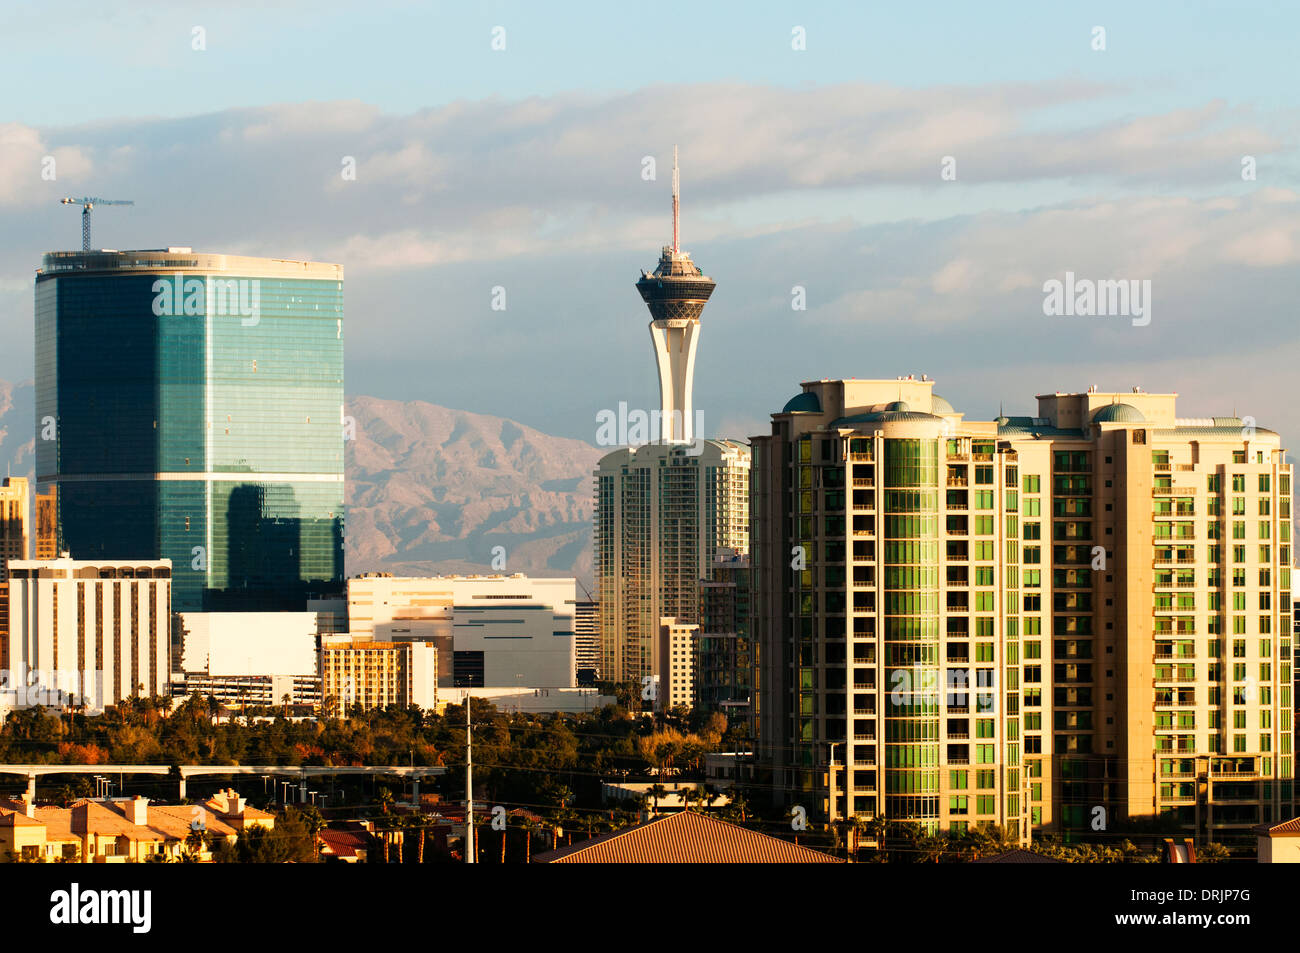 Las Vegas skyline with the Stratosphere Hotel in the distance. - Stock Image